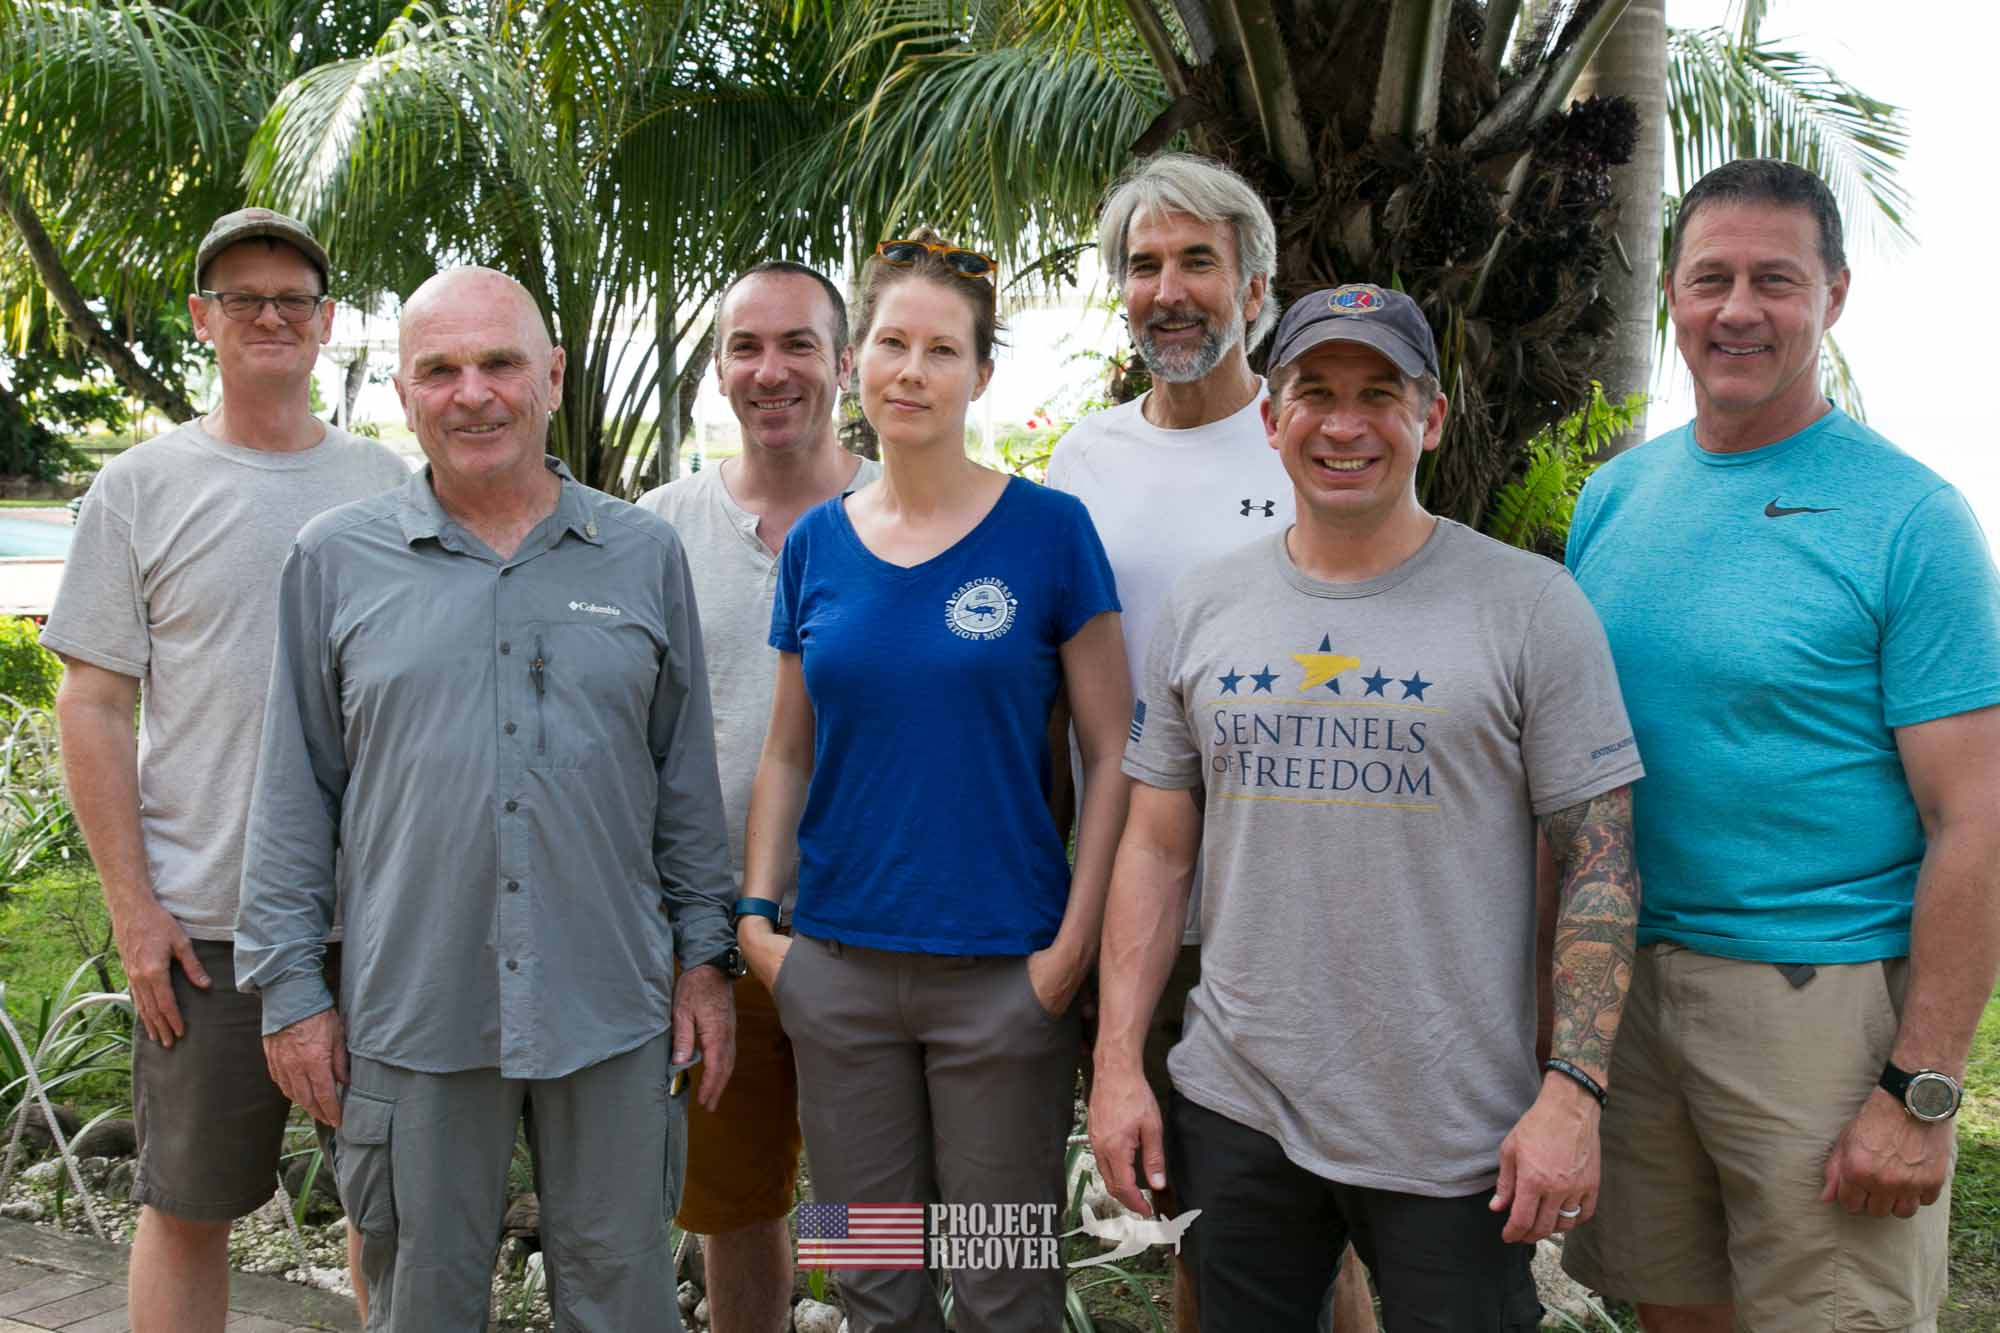 Project Recover Team Photo - From L to R: Ewan Stevenson (Solomon research specialist and guide), Dan O'Brien (team leader), Tony Burgess (survey assist), Megan Lickliter-Mundon (archeologist), Charlie Brown (camera assist), Derek Abbey (sonar assist), Jeff Lynett (sonar), not featured - Harry Parker (photographer) Scuba diving MIA crash sites - Project Recover and BentProp Project are committed to bringing the MIA home. Photos by Harry Parker Photography.com